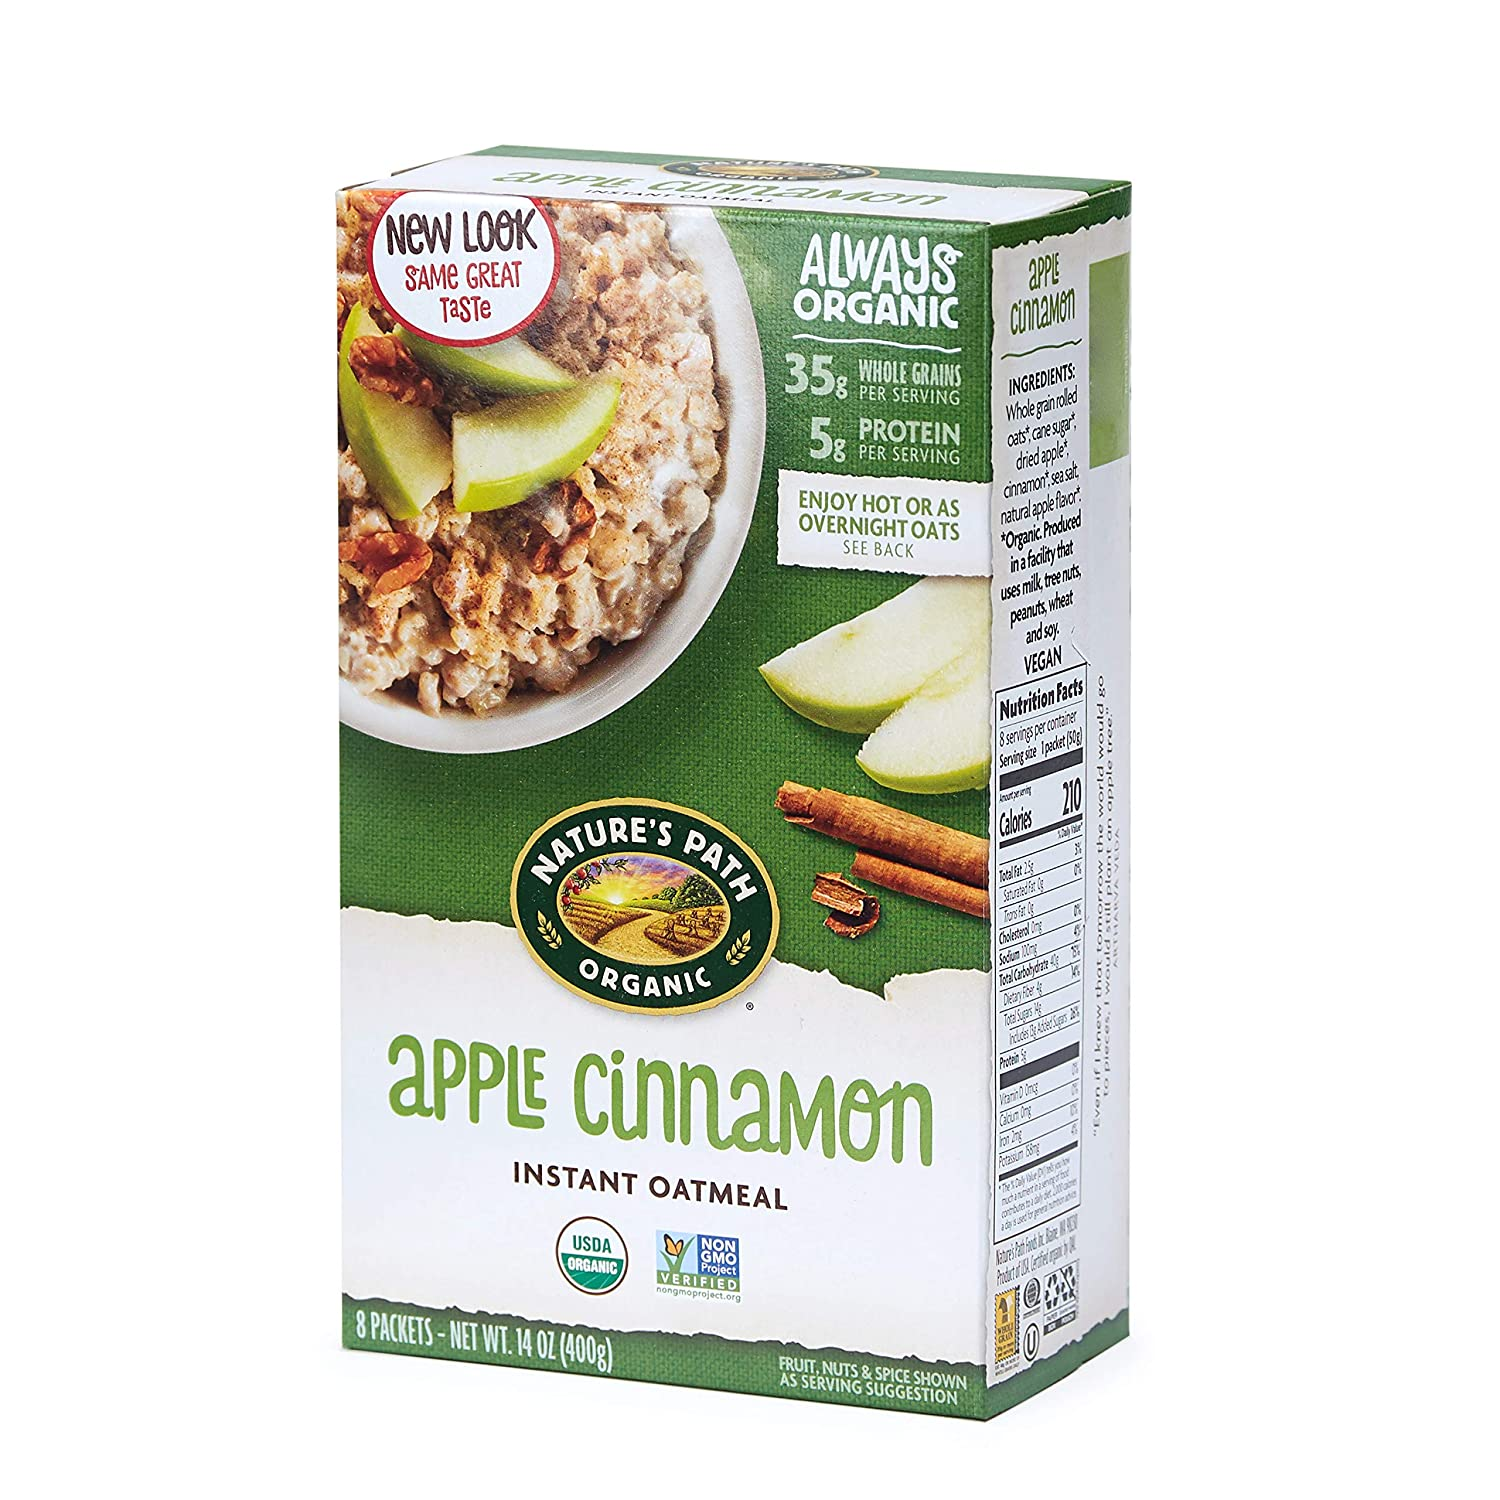 Nature's Path Apple Cinnamon Instant Oatmeal, Healthy, Organic, 8 Pouches per Box, 14 Ounces (Pack of 6)